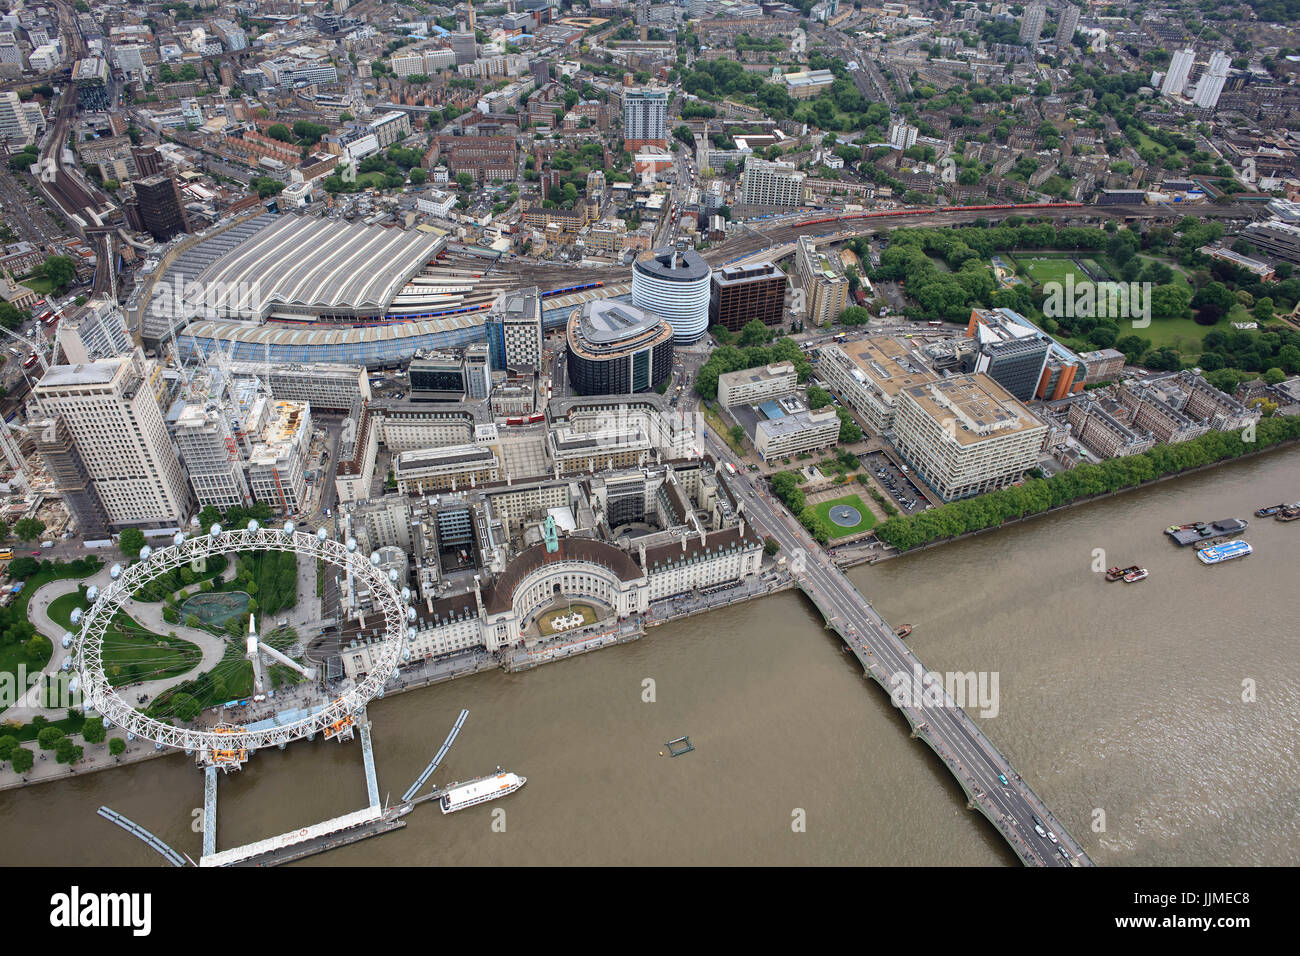 An aerial view of the South Bank in London including the London Eye and Waterloo Station - Stock Image